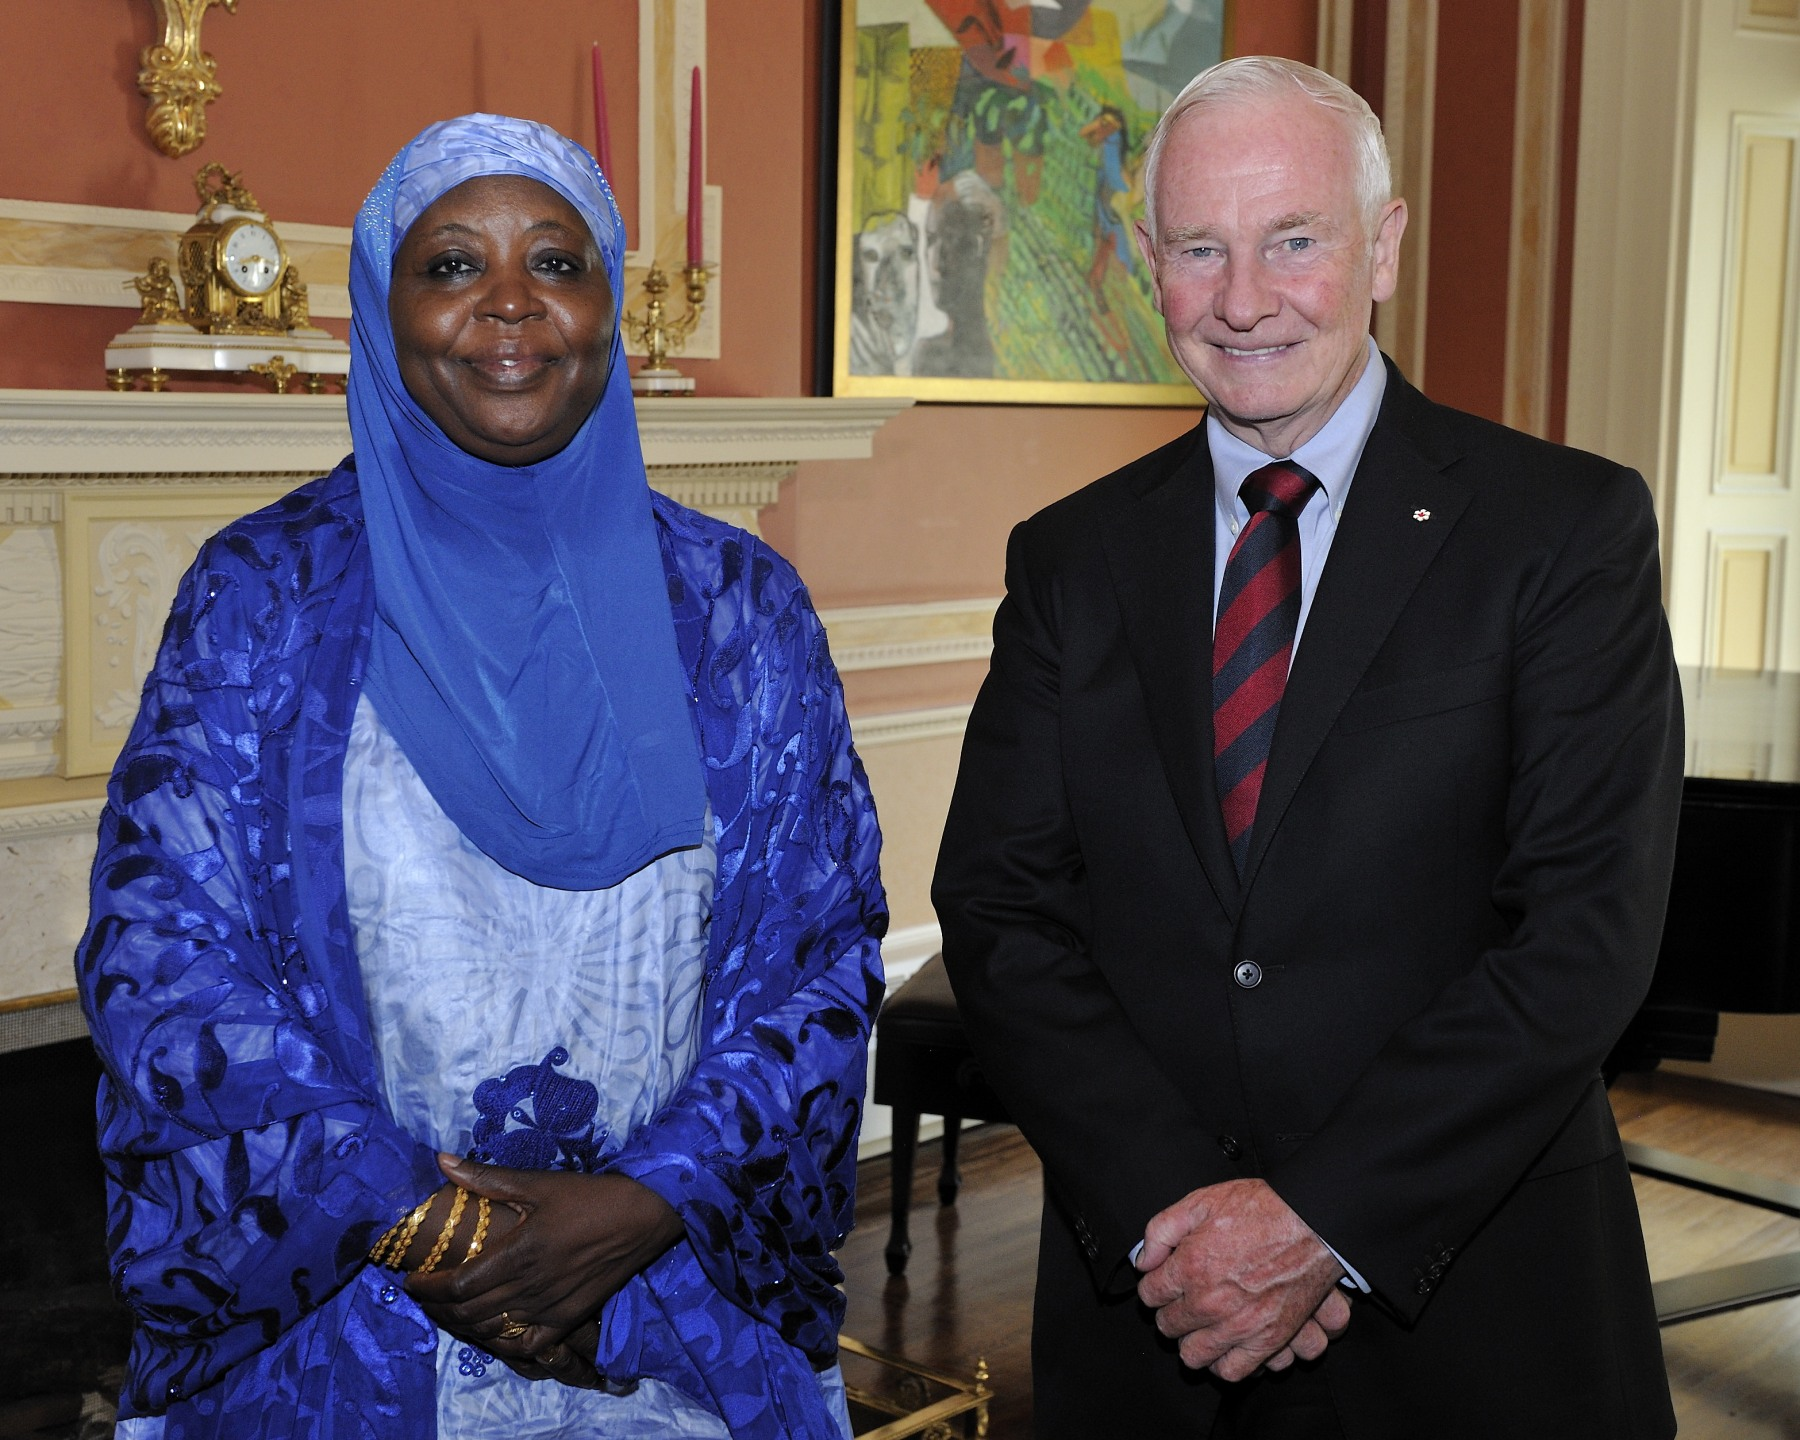 A presentation of credentials from nine new heads of mission took place on September 13, 2012, at Rideau Hall. On this occasion, the Governor General first received the credentials of Her Excellency Sidibé Fadjimata, Ambassador of the Republic of Niger.